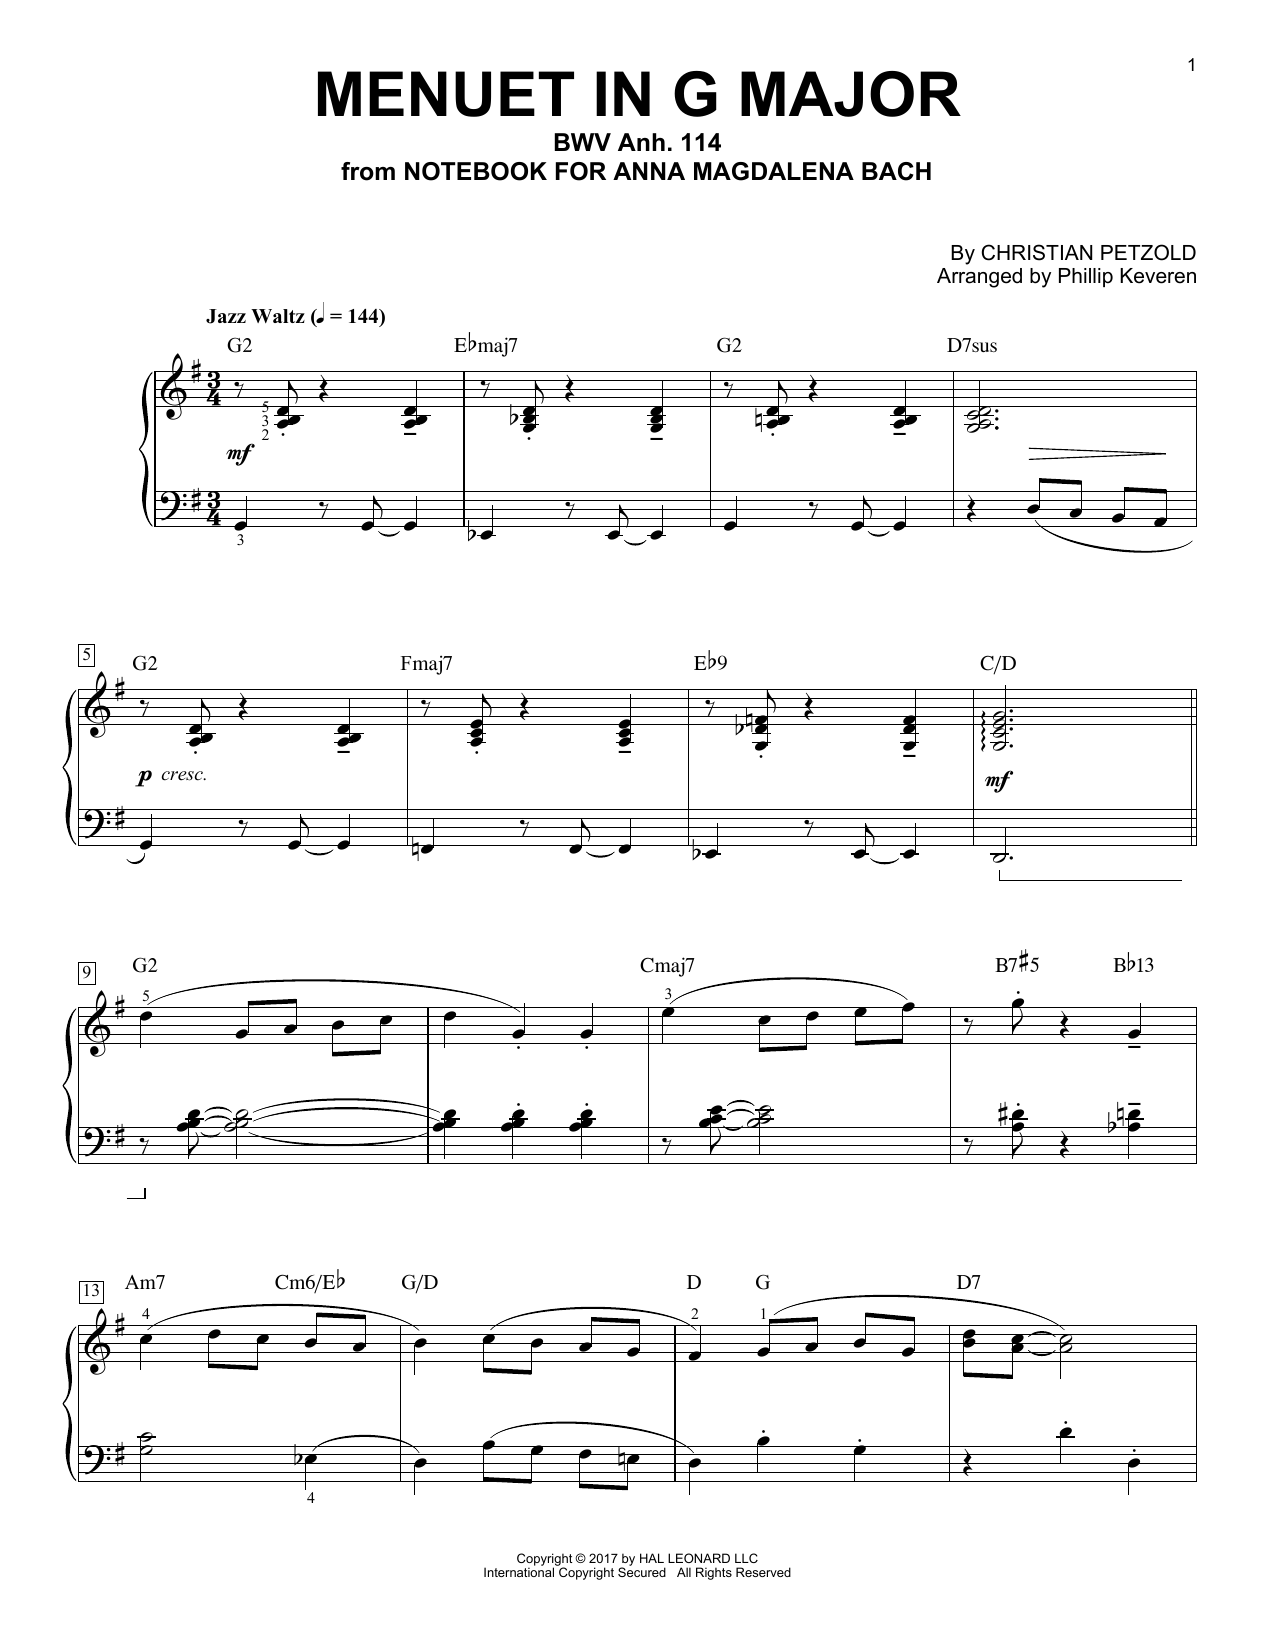 Phillip Keveren Menuet In G Major, BMV Anh. 114 sheet music notes and chords